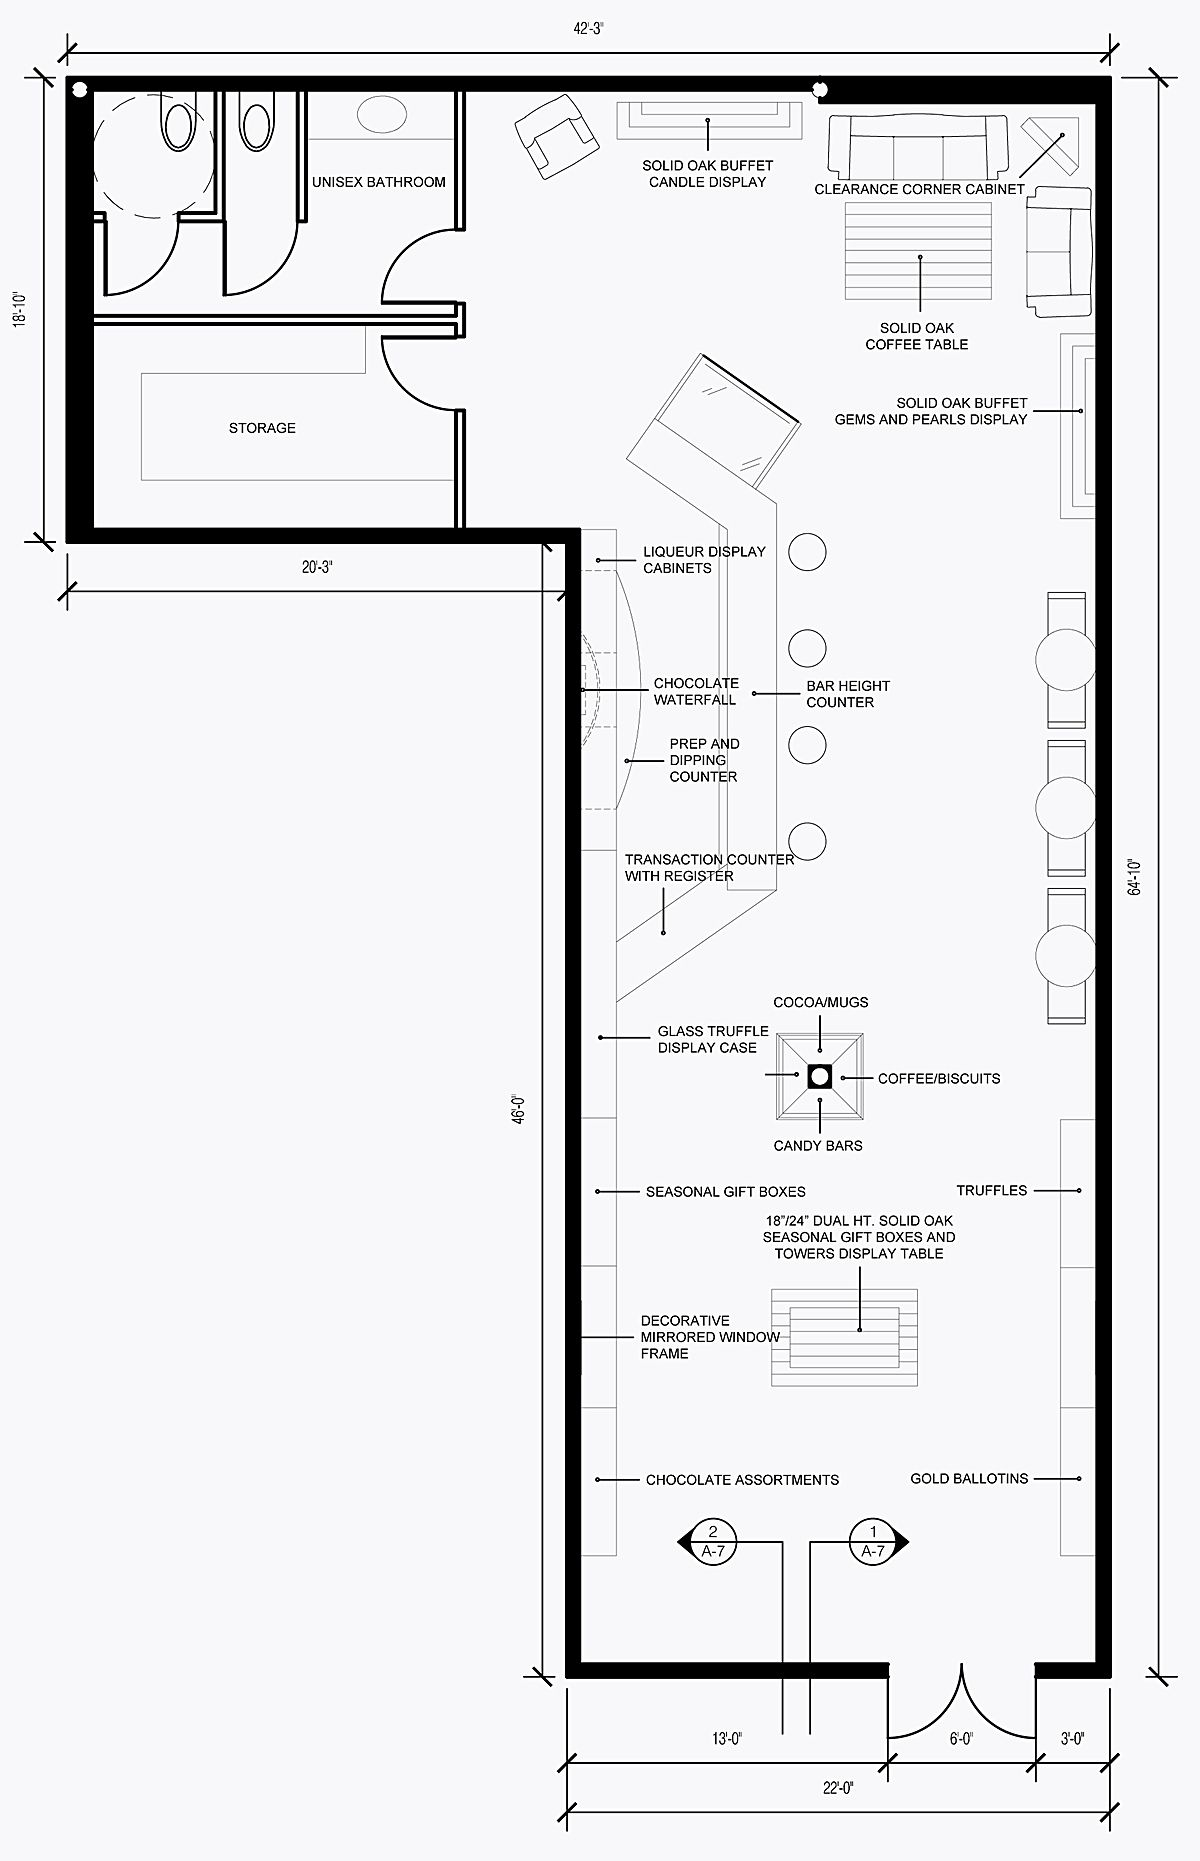 Outstanding sample retail store floor plans 1200 x 1861 for Blueprint drawing program